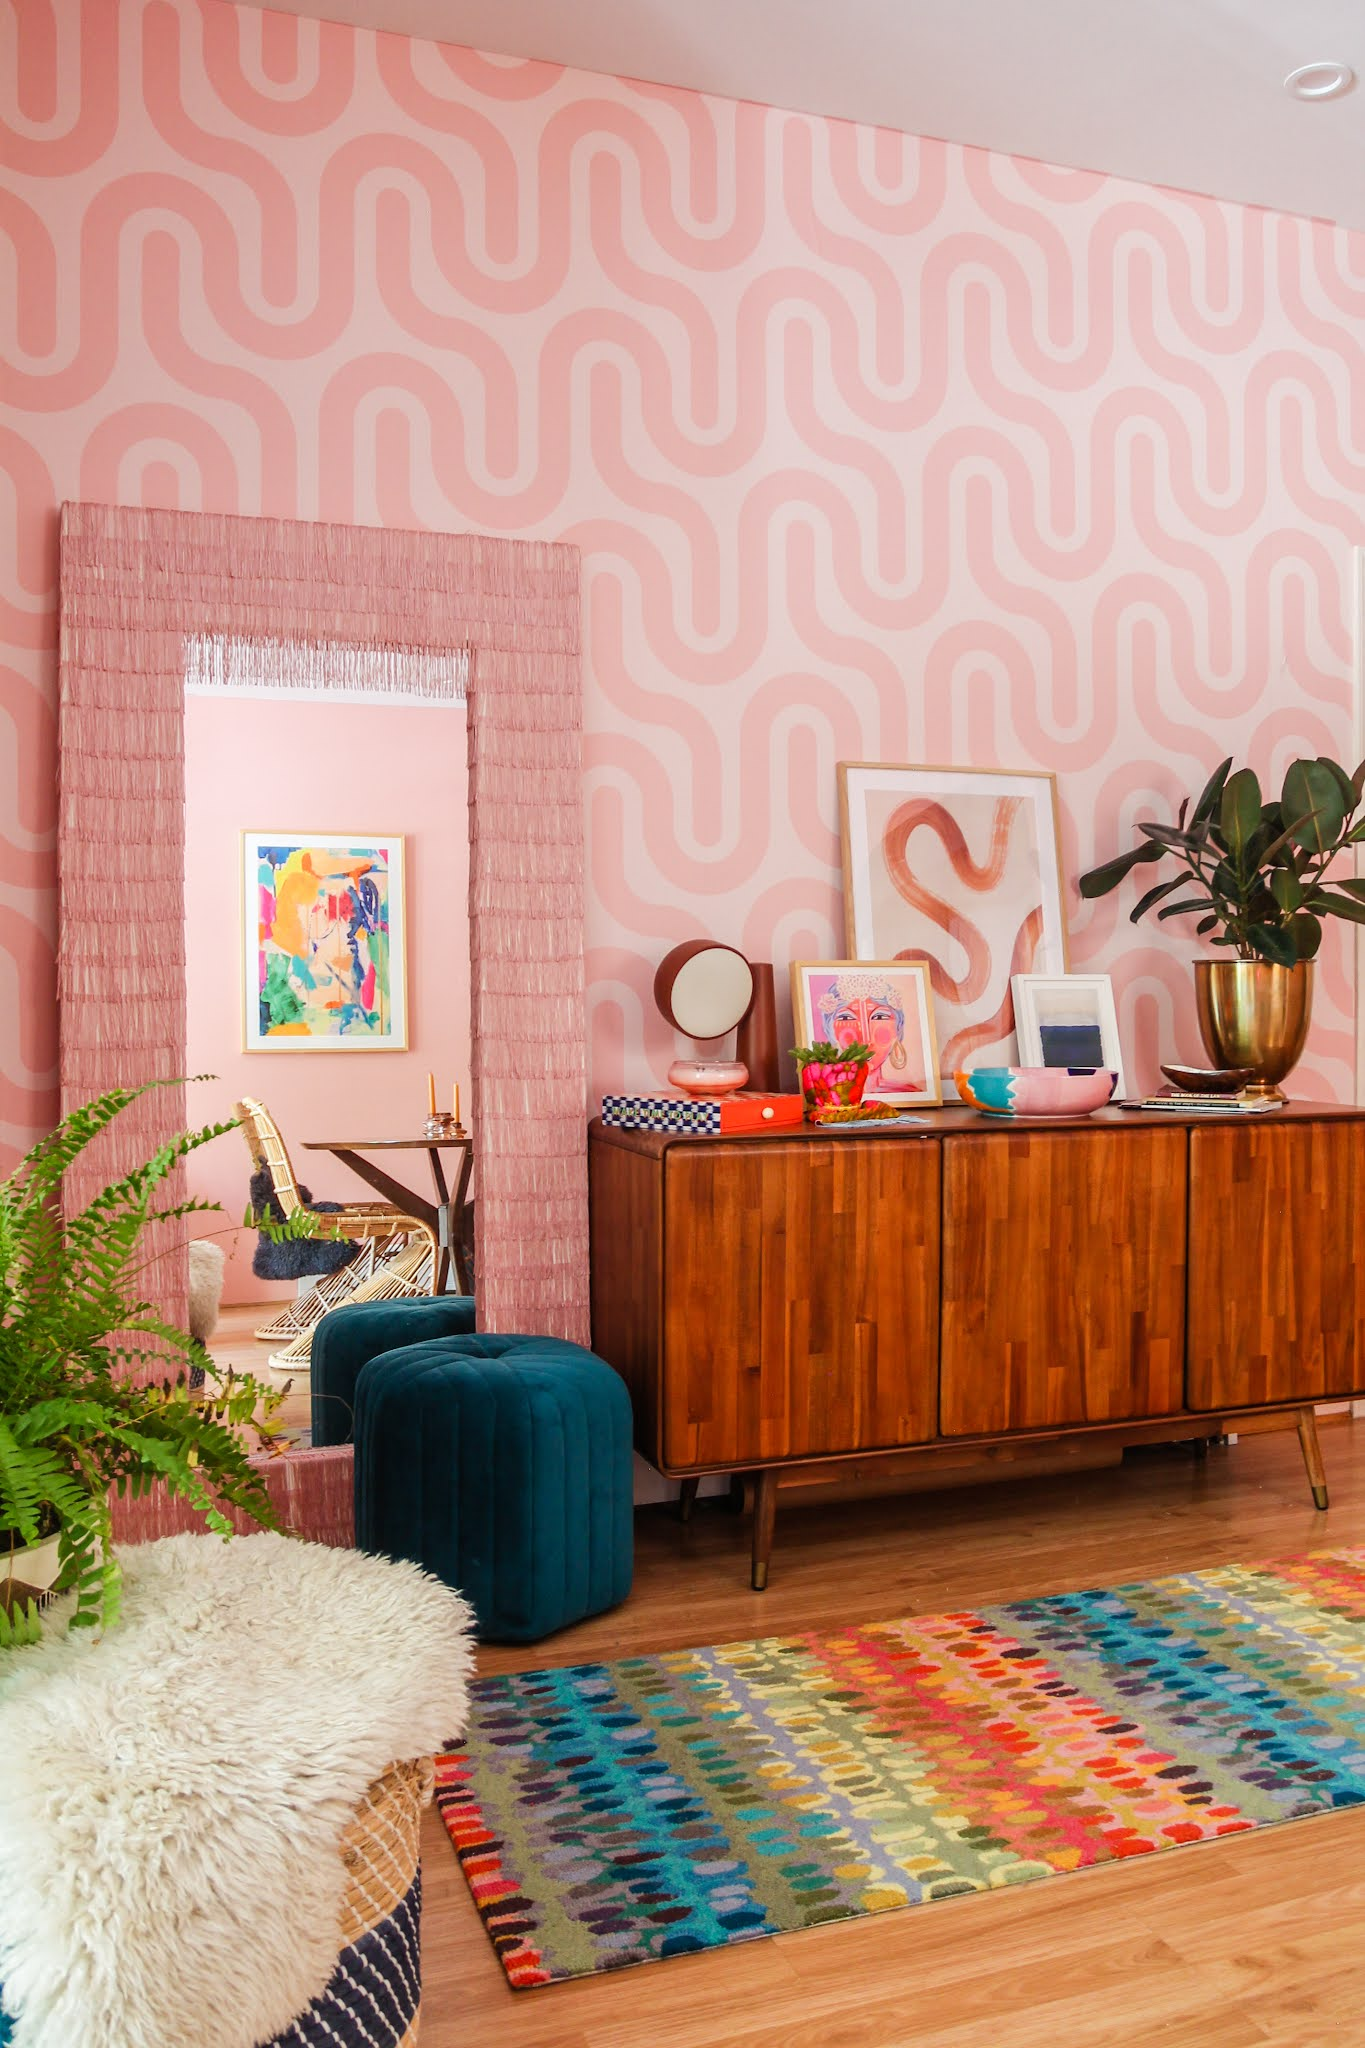 wallpaper ideas // colorful homes // maximalist home decor // pink home decor // retro home decor // retro wallpaper ideas // entryway decor // entryway ideas // small space decor ideas // maximalist homes